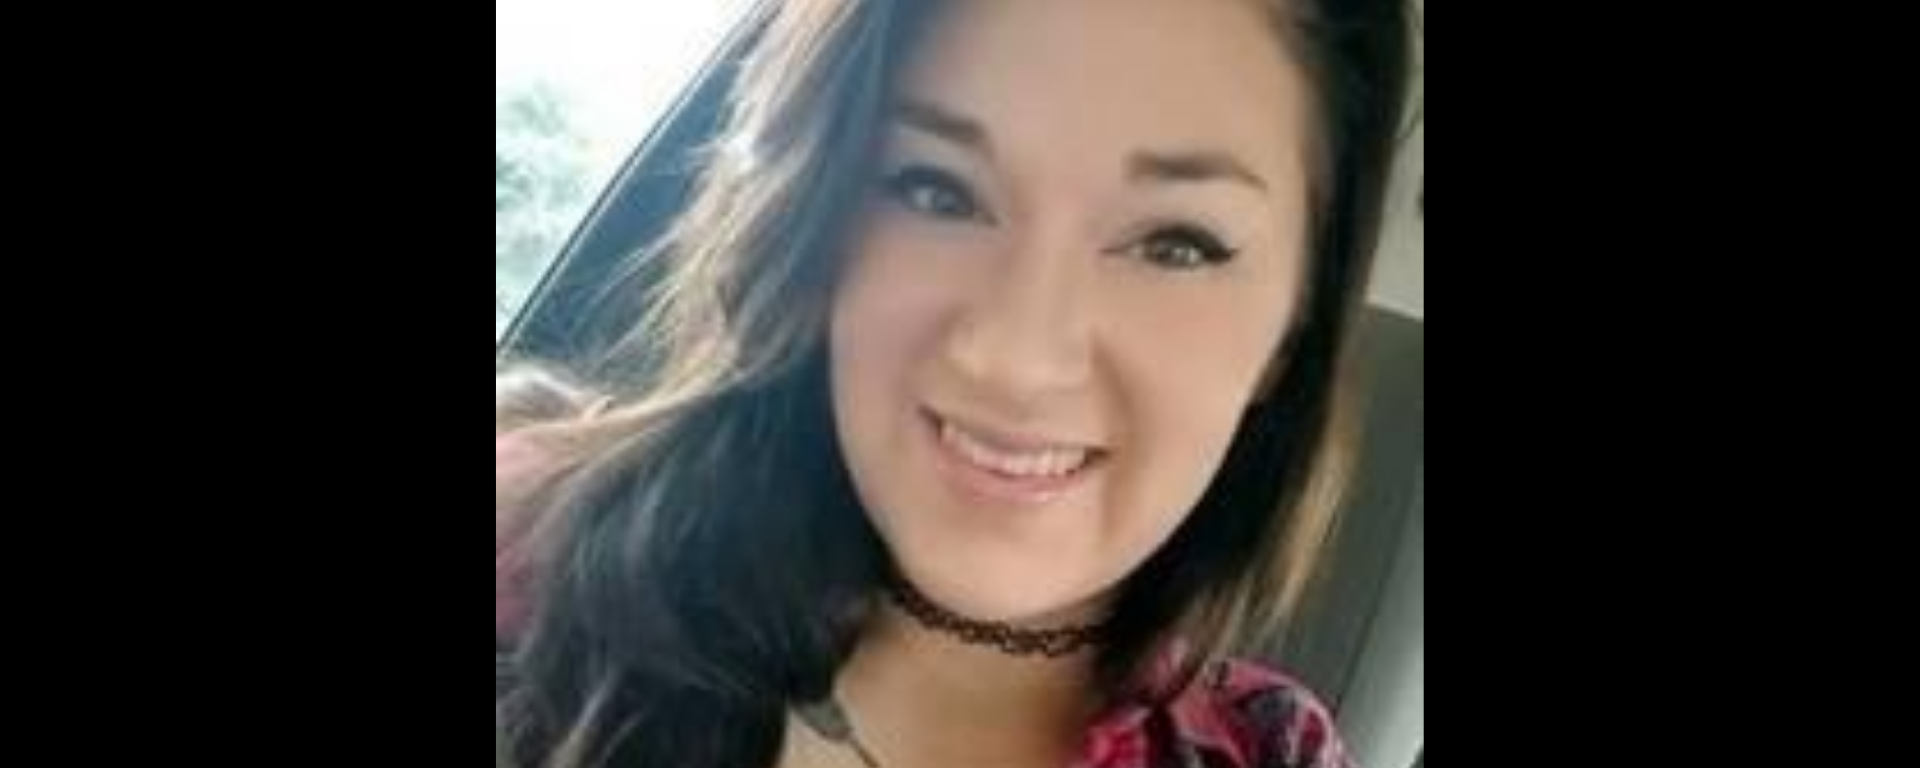 A selfie taken by Caitlynne Infinger, the 20-year-old who was murdered by her husband.